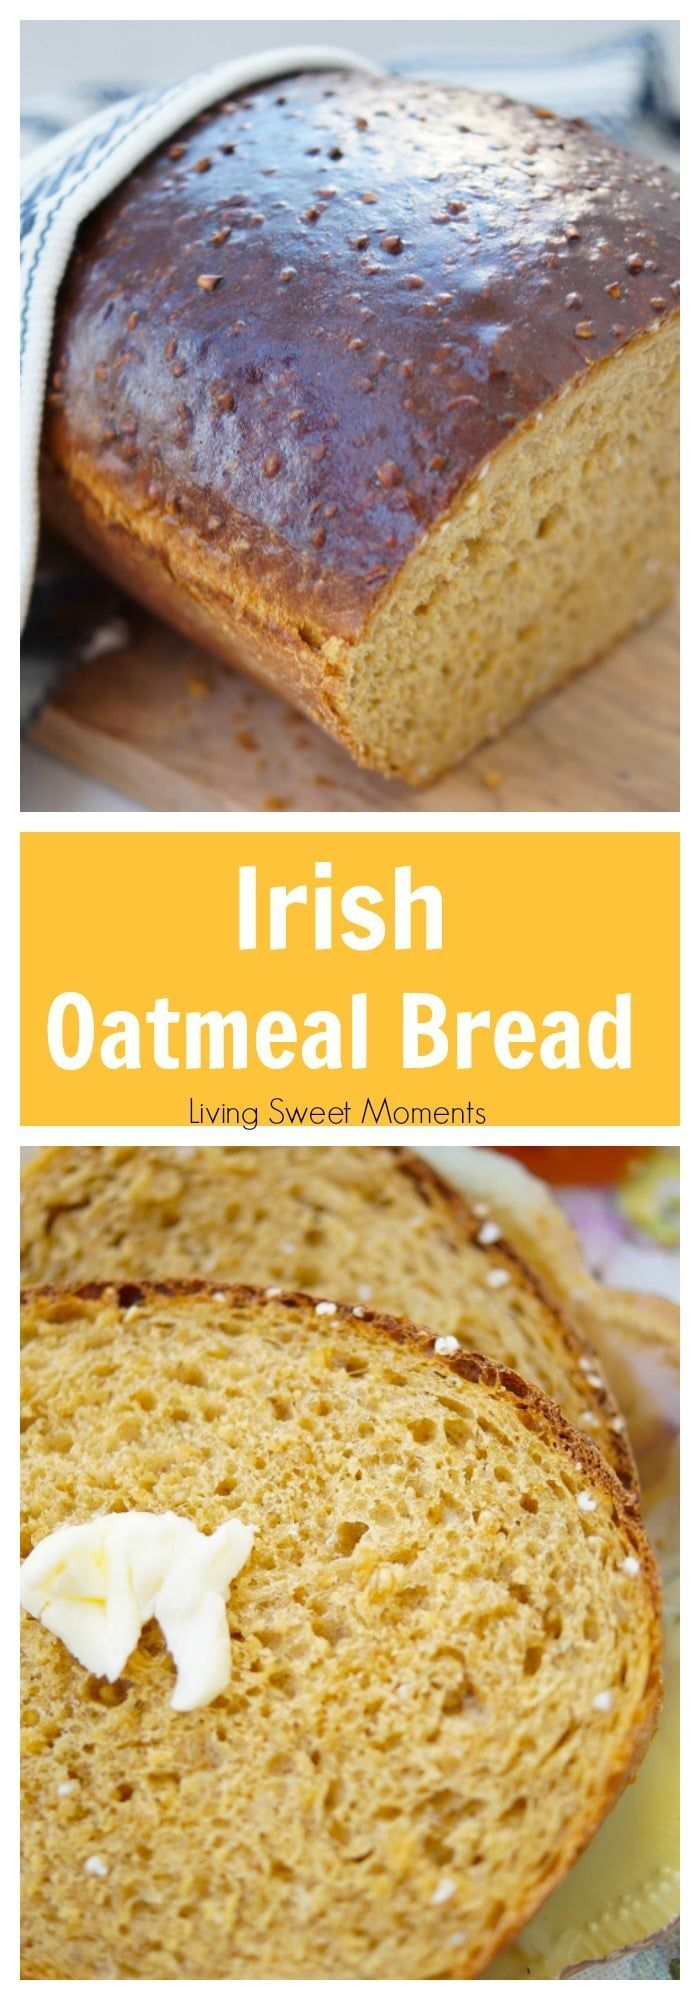 This easy and delicious Irish Oatmeal Bread recipe is made with steel cut oats, yeast, and molasses. Perfect for toast, sandwiches, & everything in between. More bread recipes at livingsweetmoments.com via @Livingsmoments